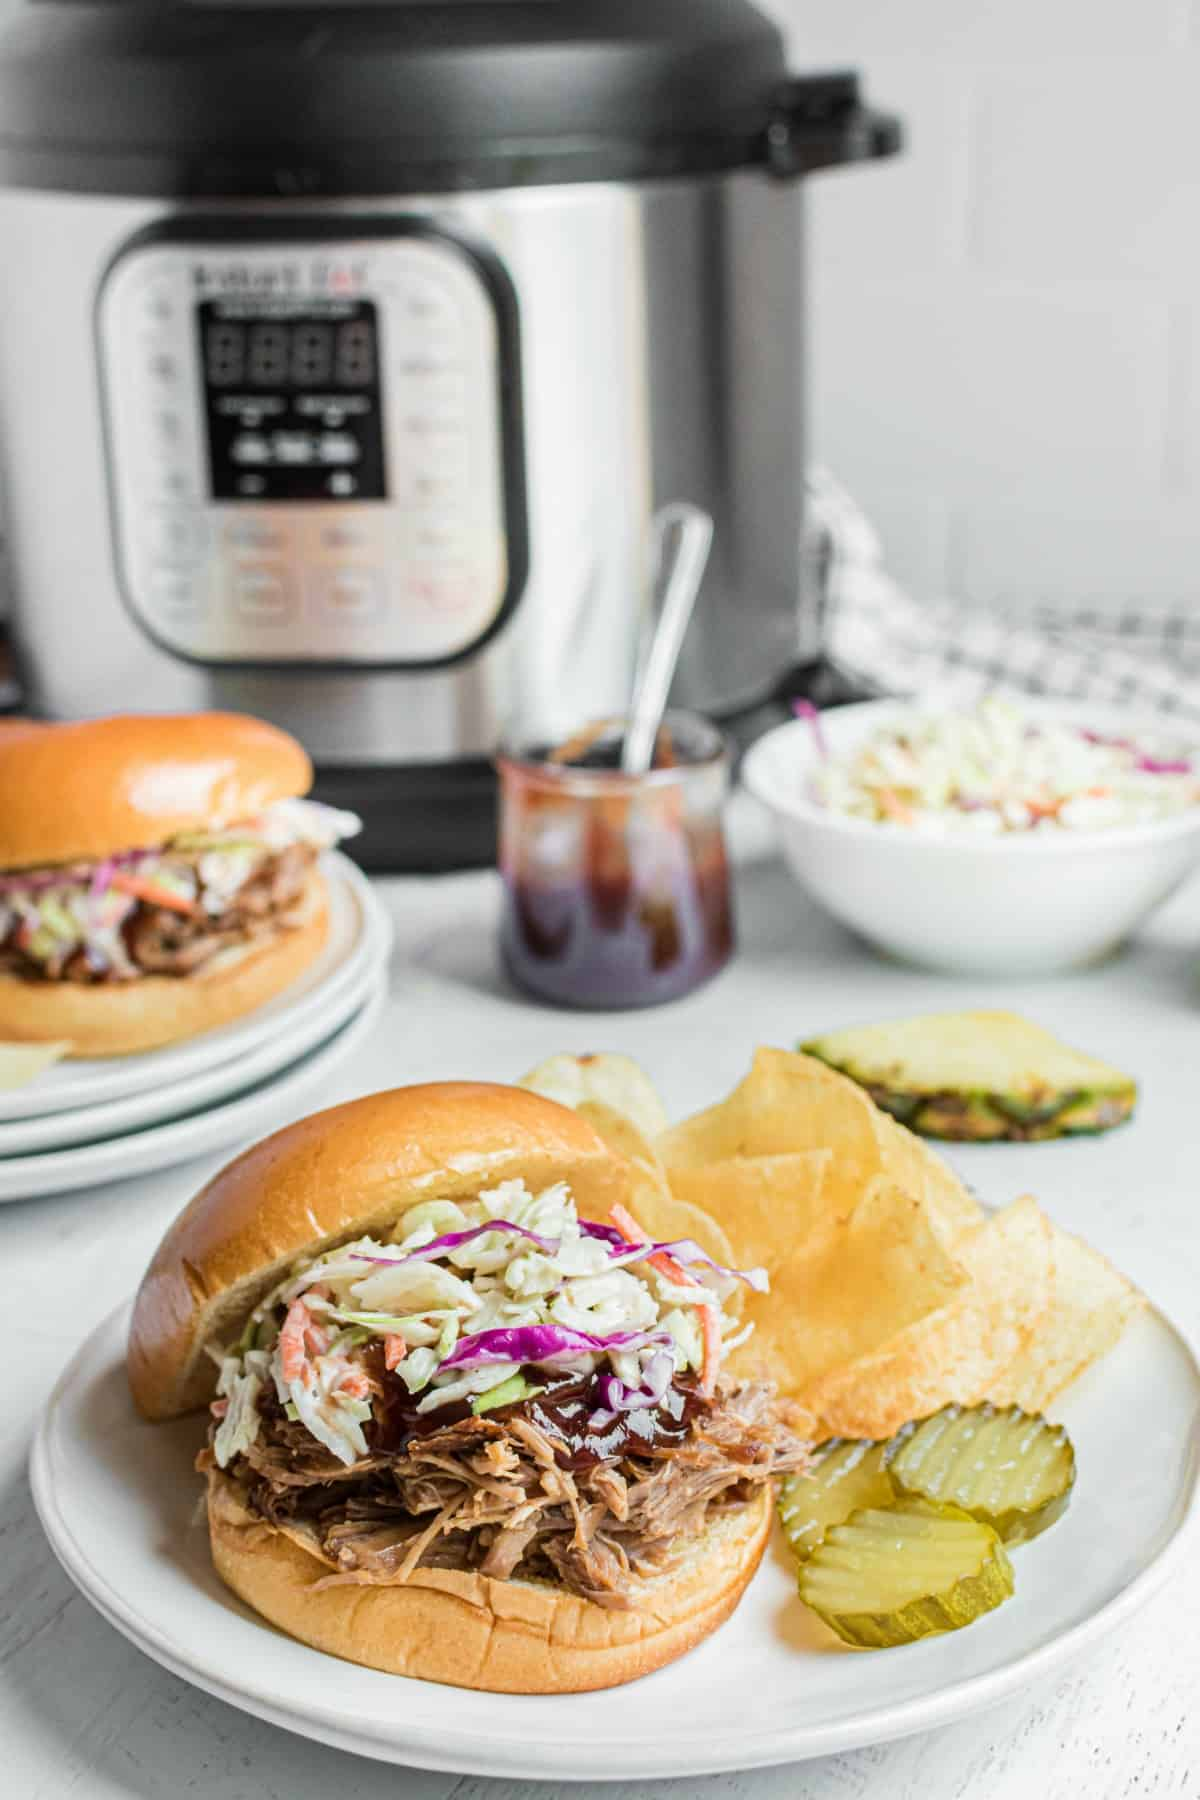 Hawaiian pork on a bun with bbq sauce and coleslaw with a side of chips and pickles. Instant pot in background.